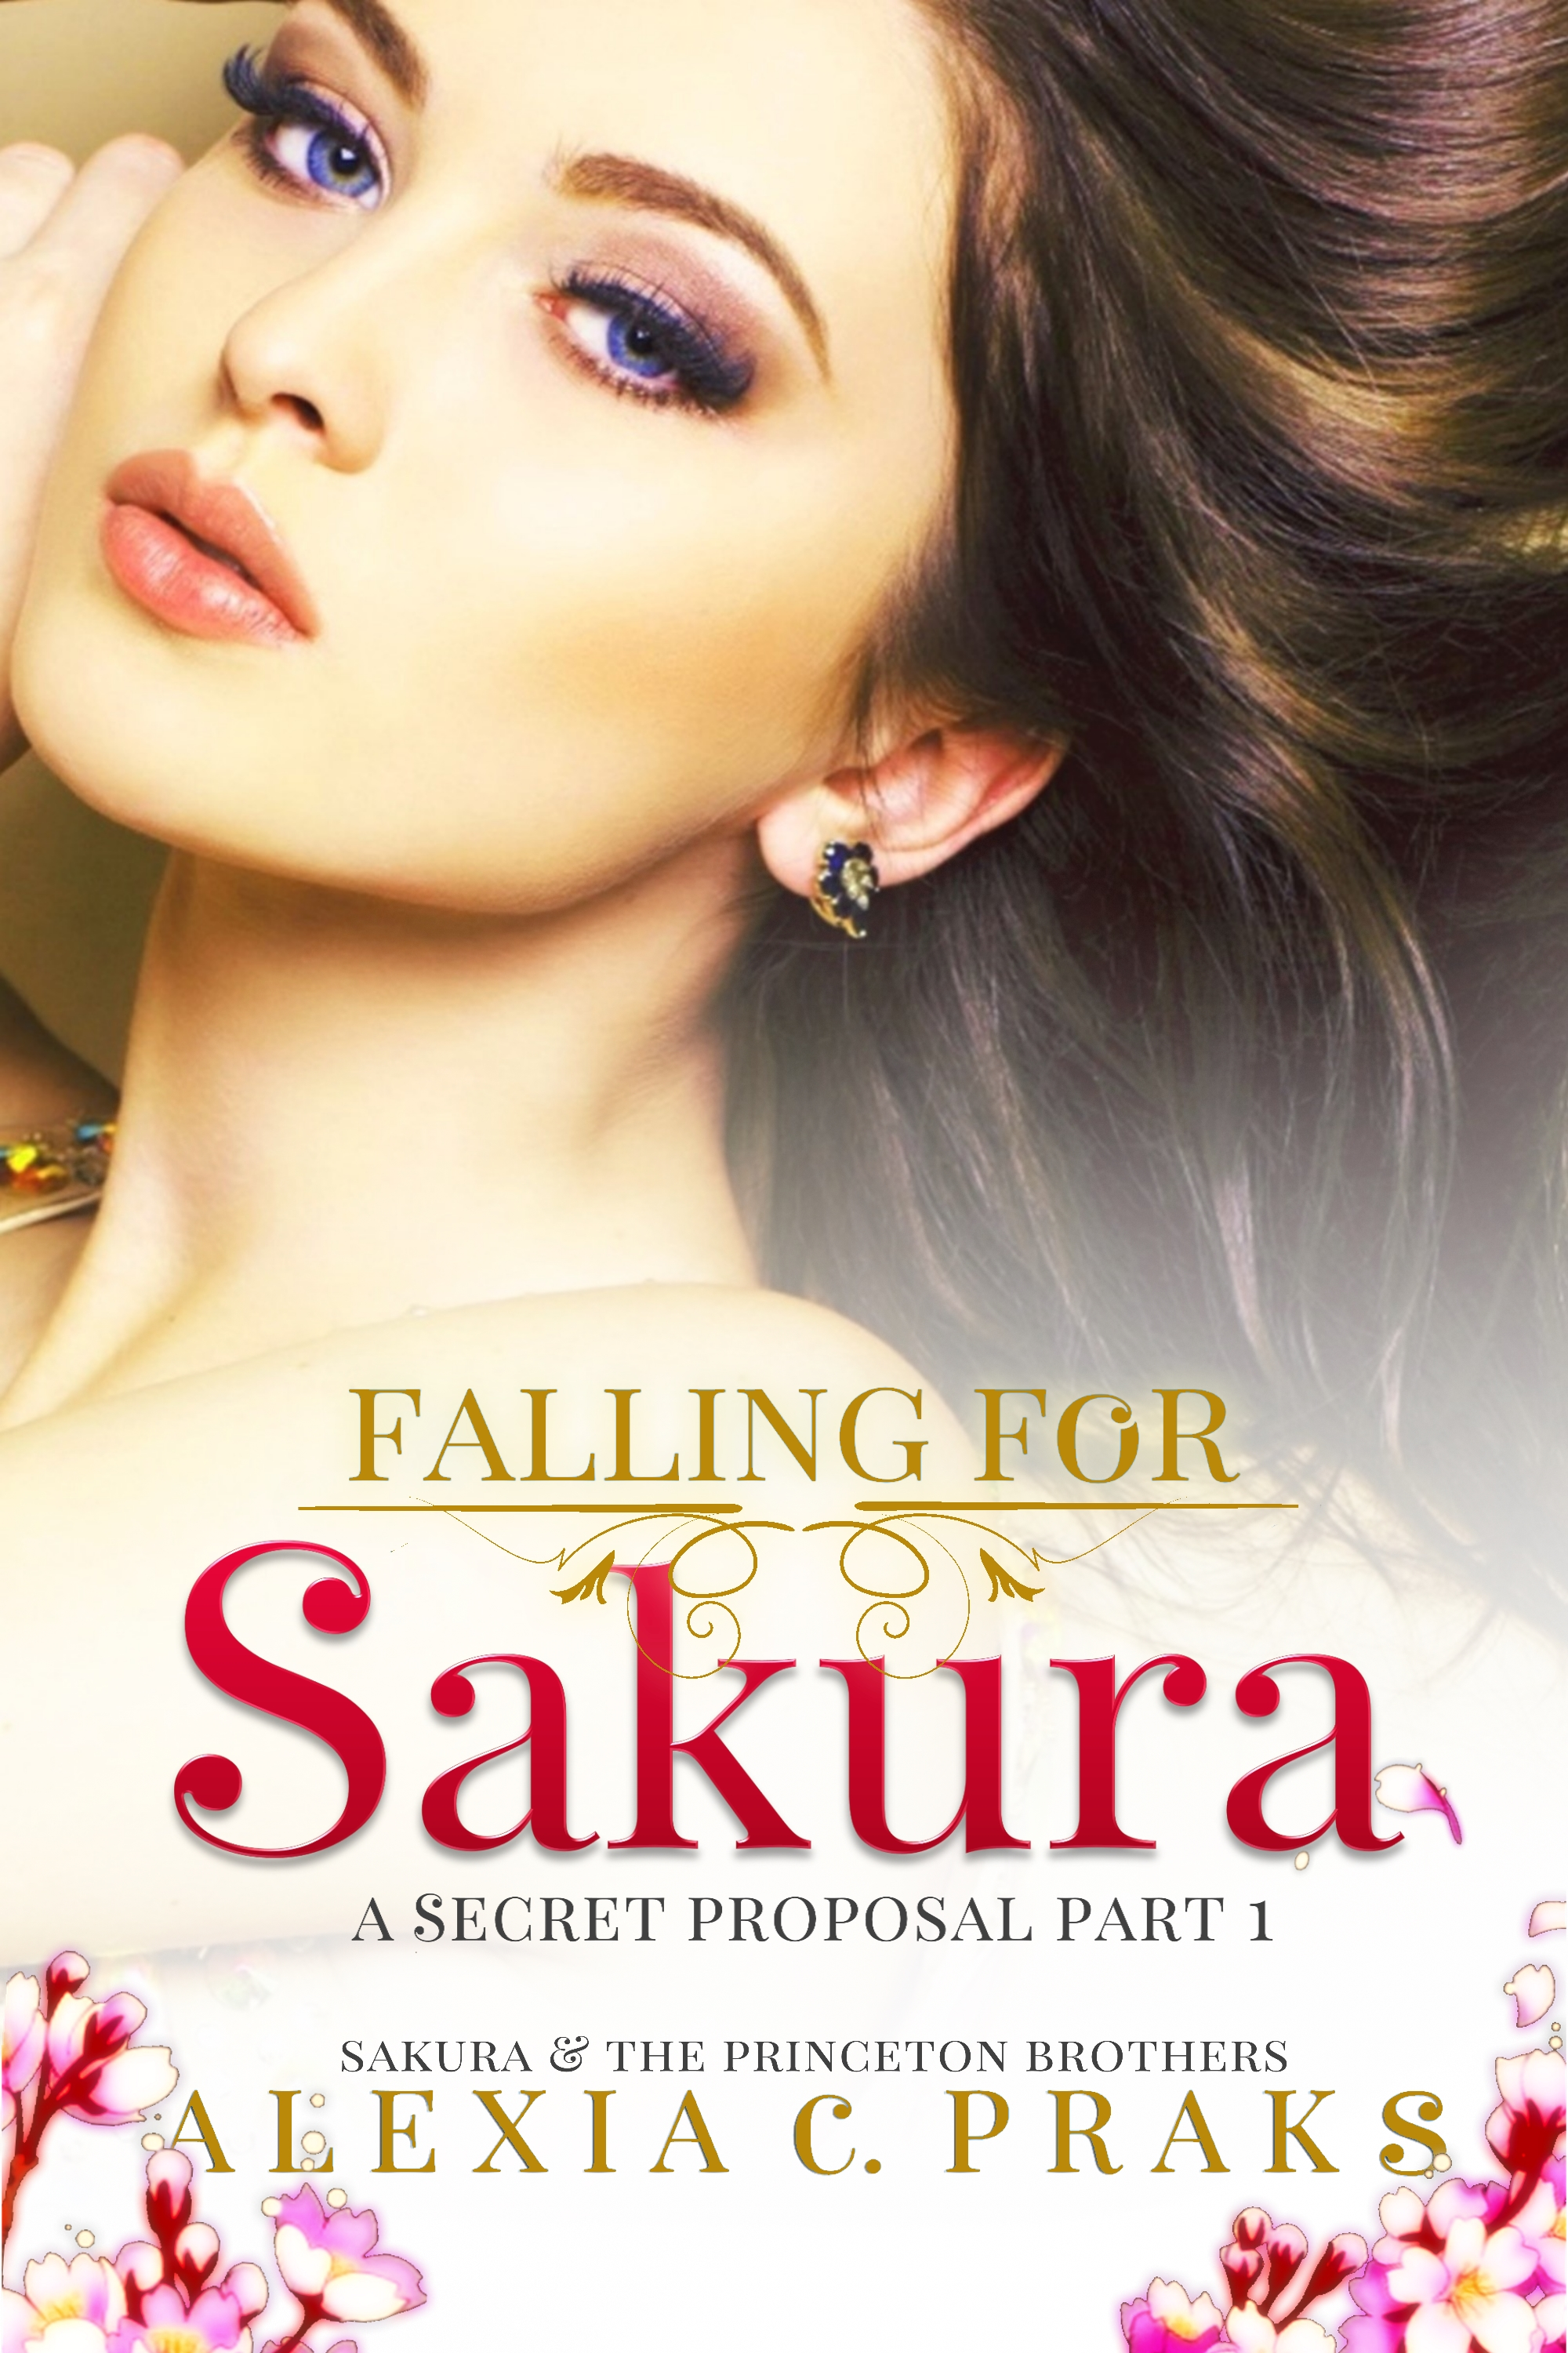 Falling for Sakura: A Secret Proposal Part 1 by Alexia Praks